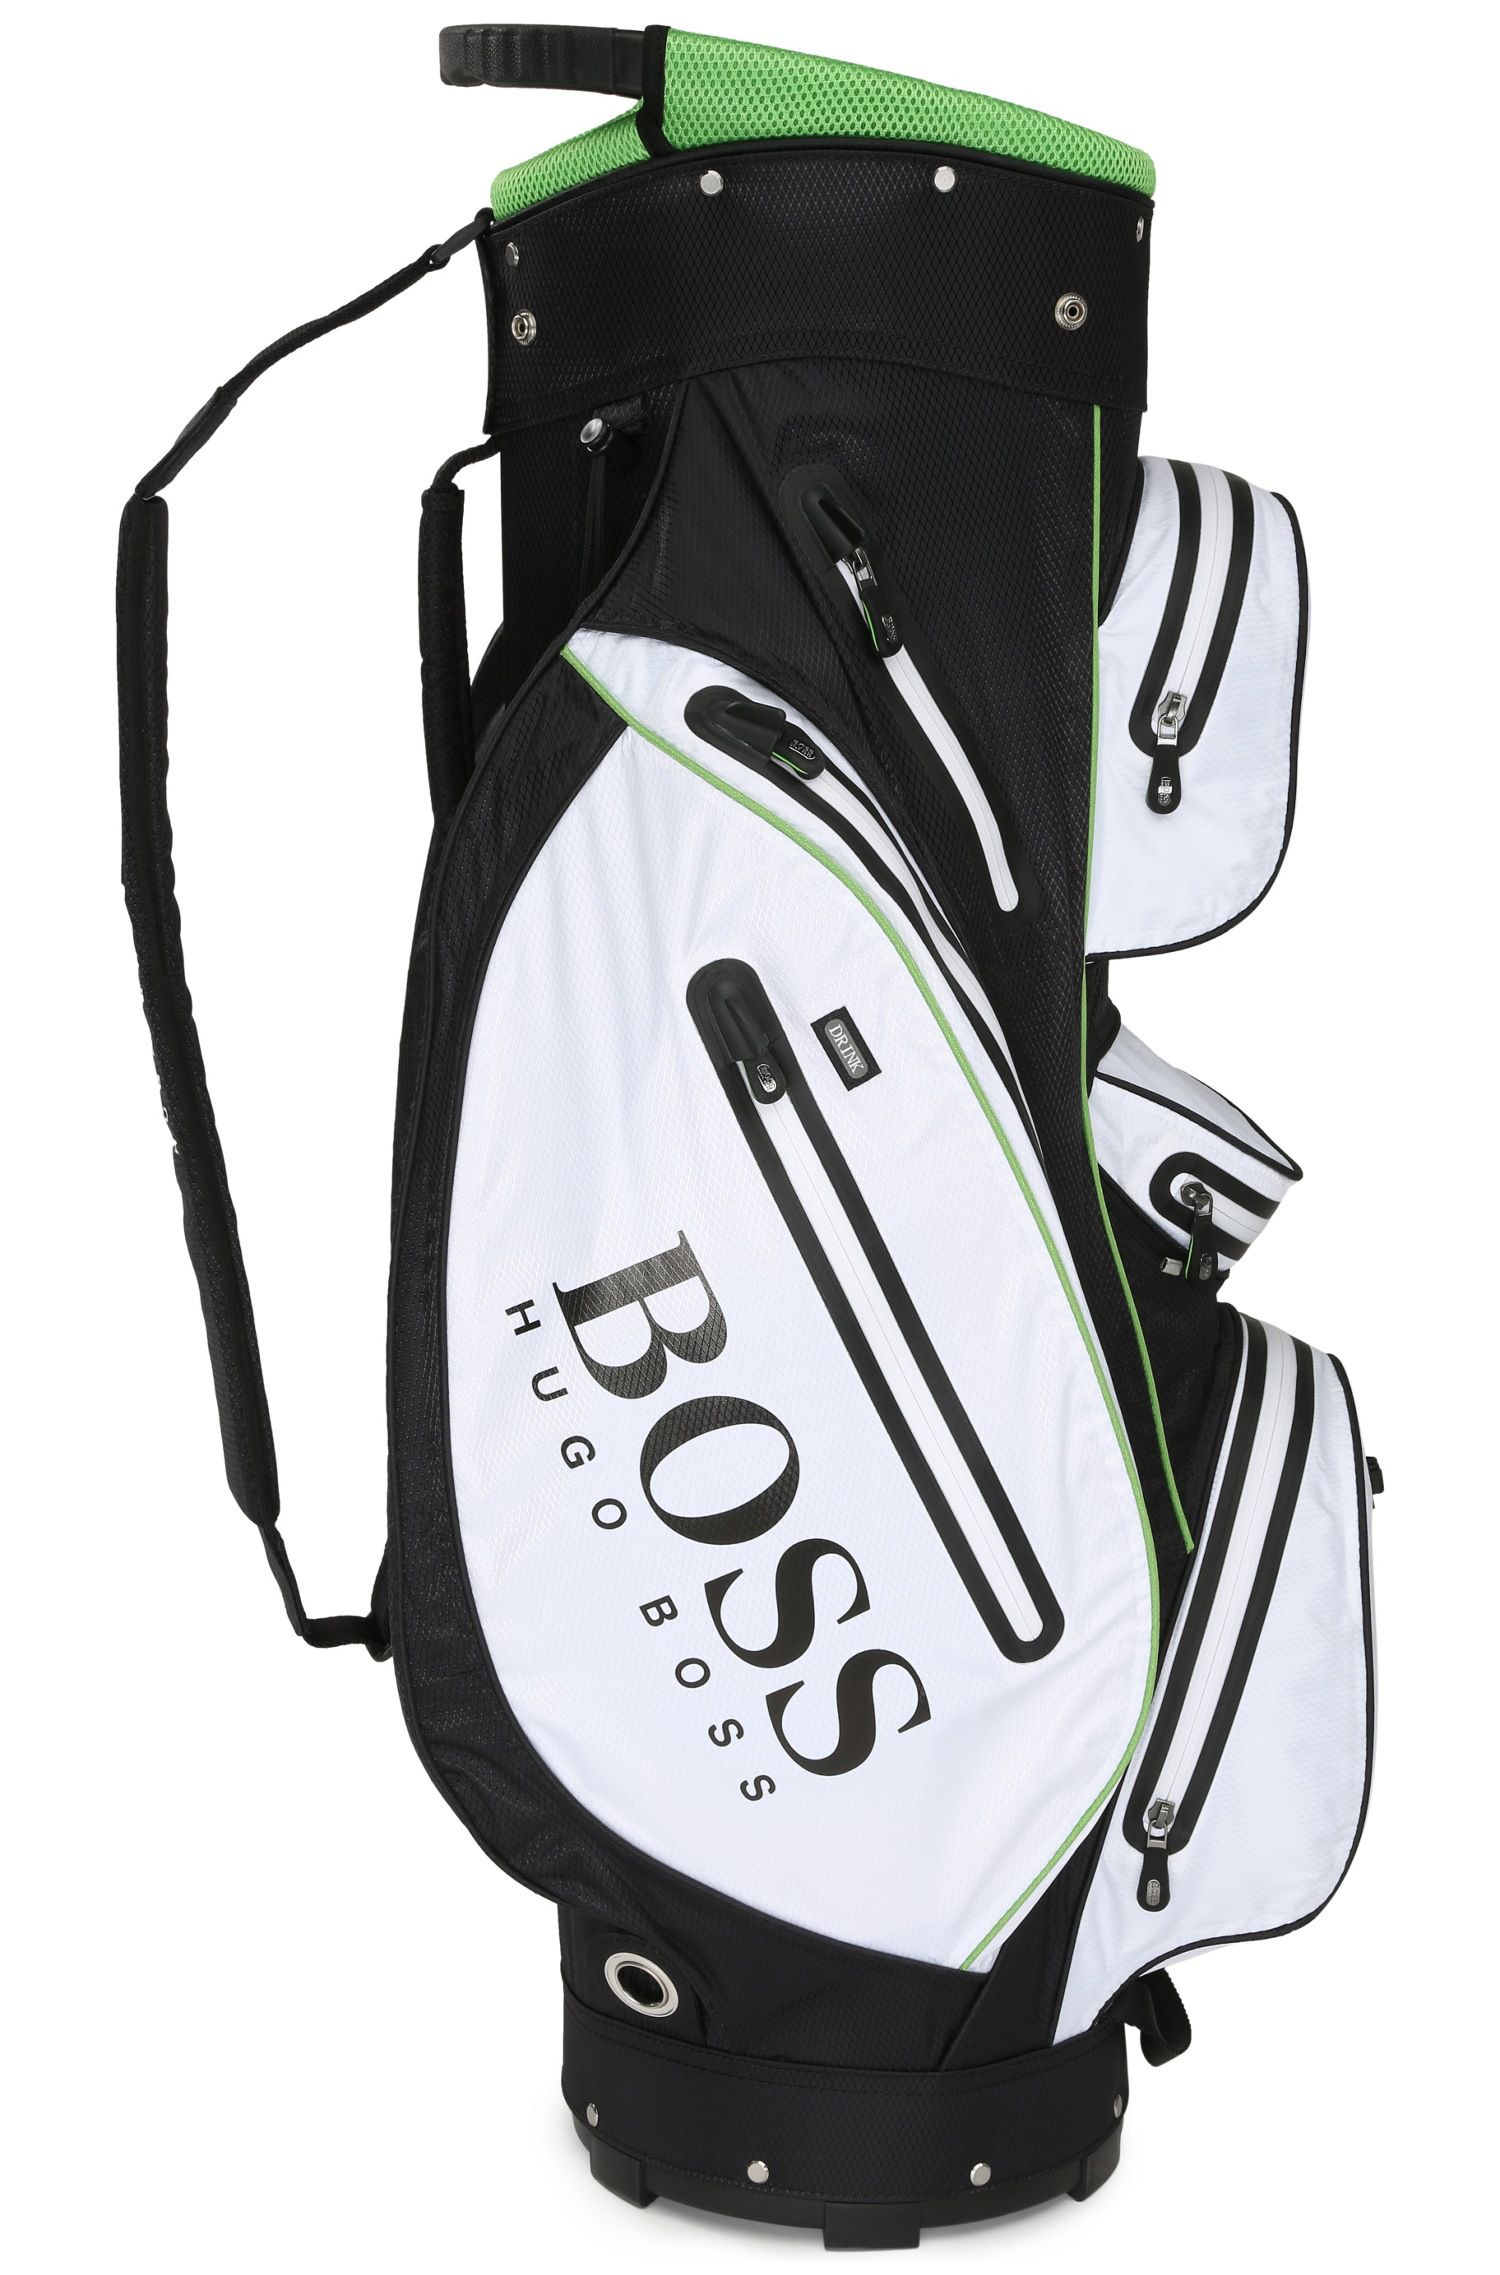 Bolsa de golf multifuncional: 'Golf_Cart'